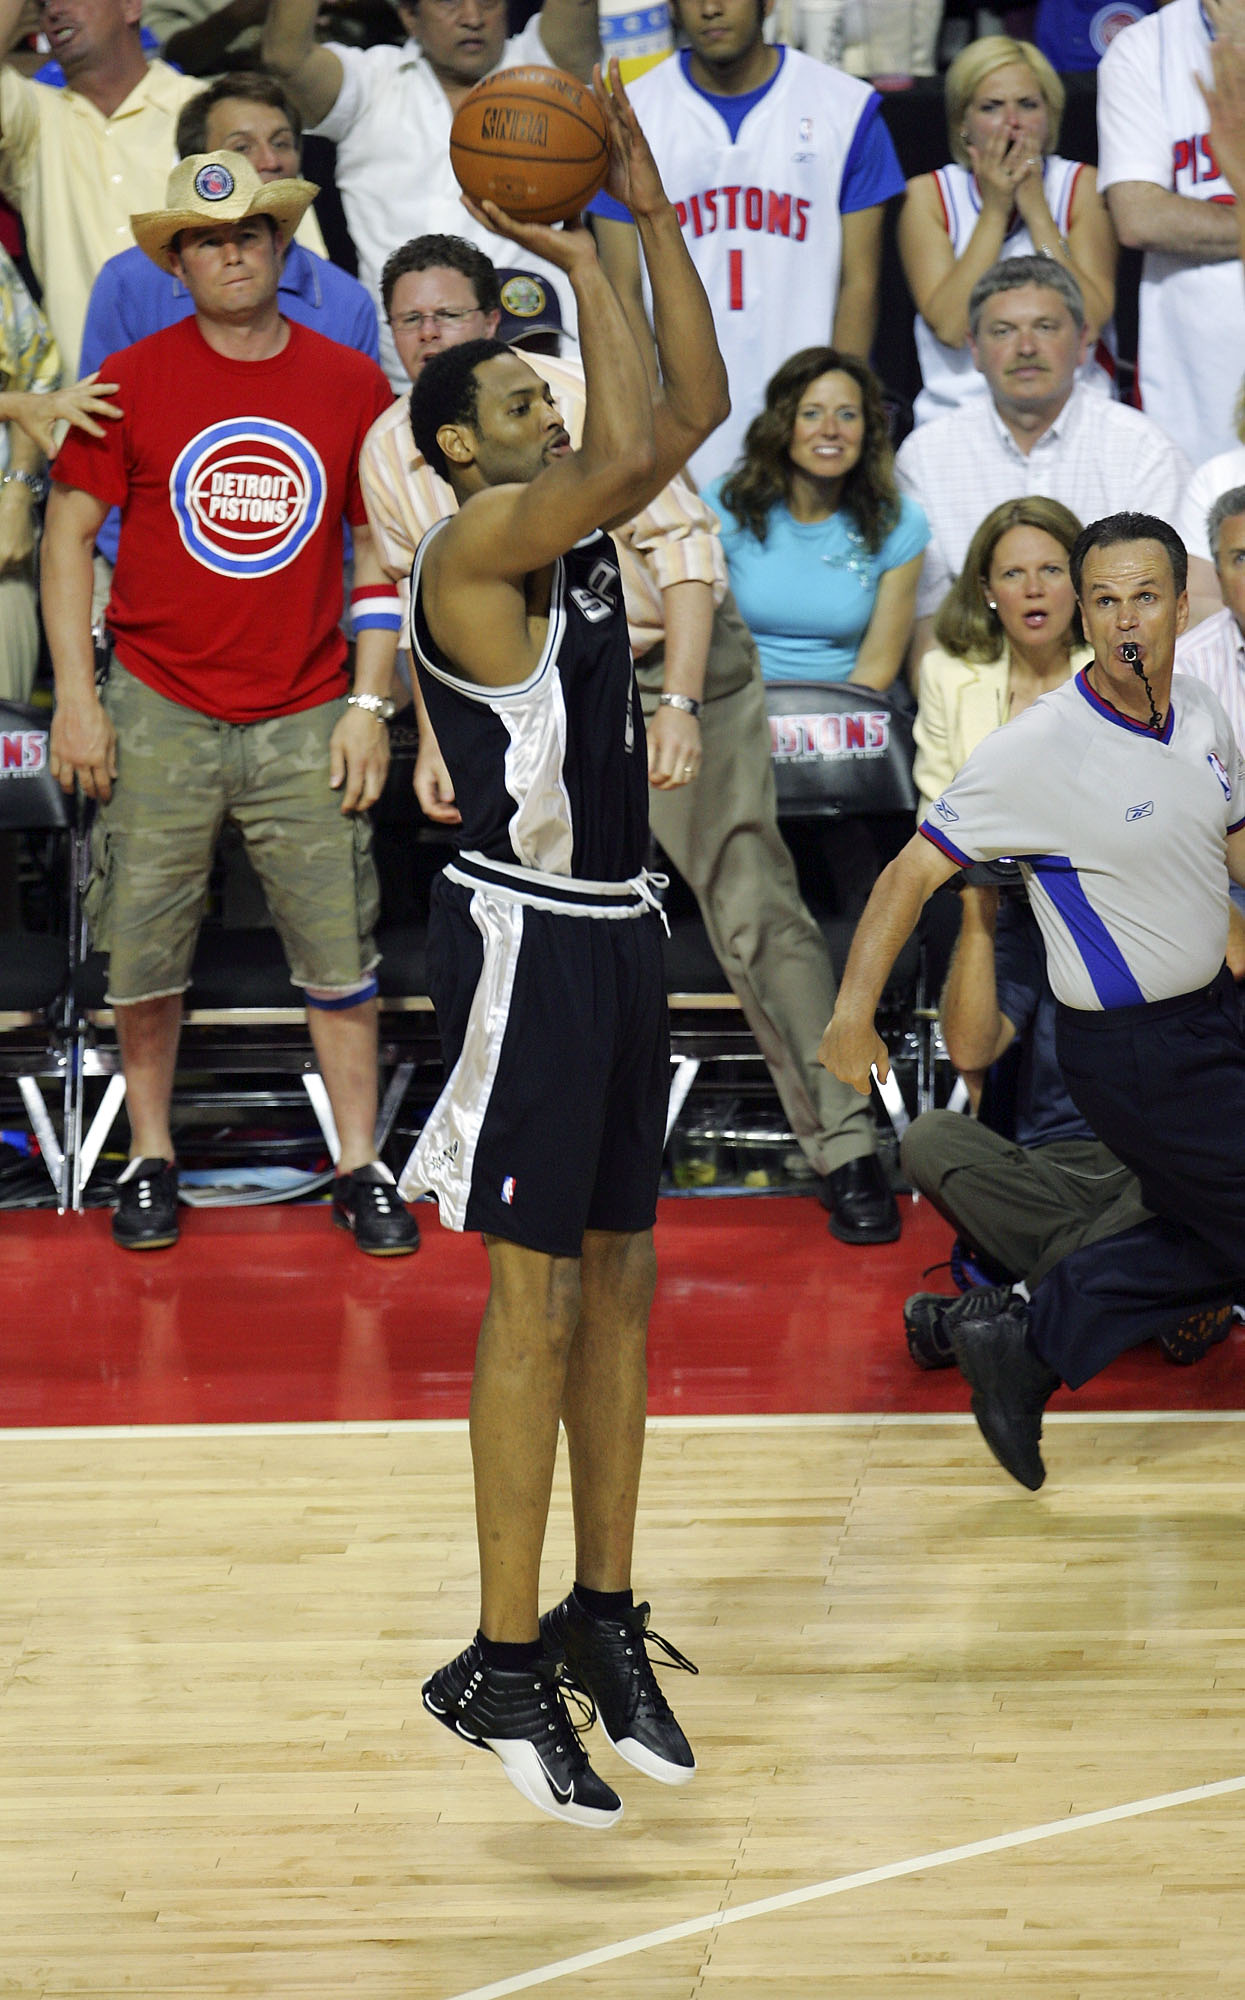 Robert Horry s 2005 Finals basket named one of the most iconic